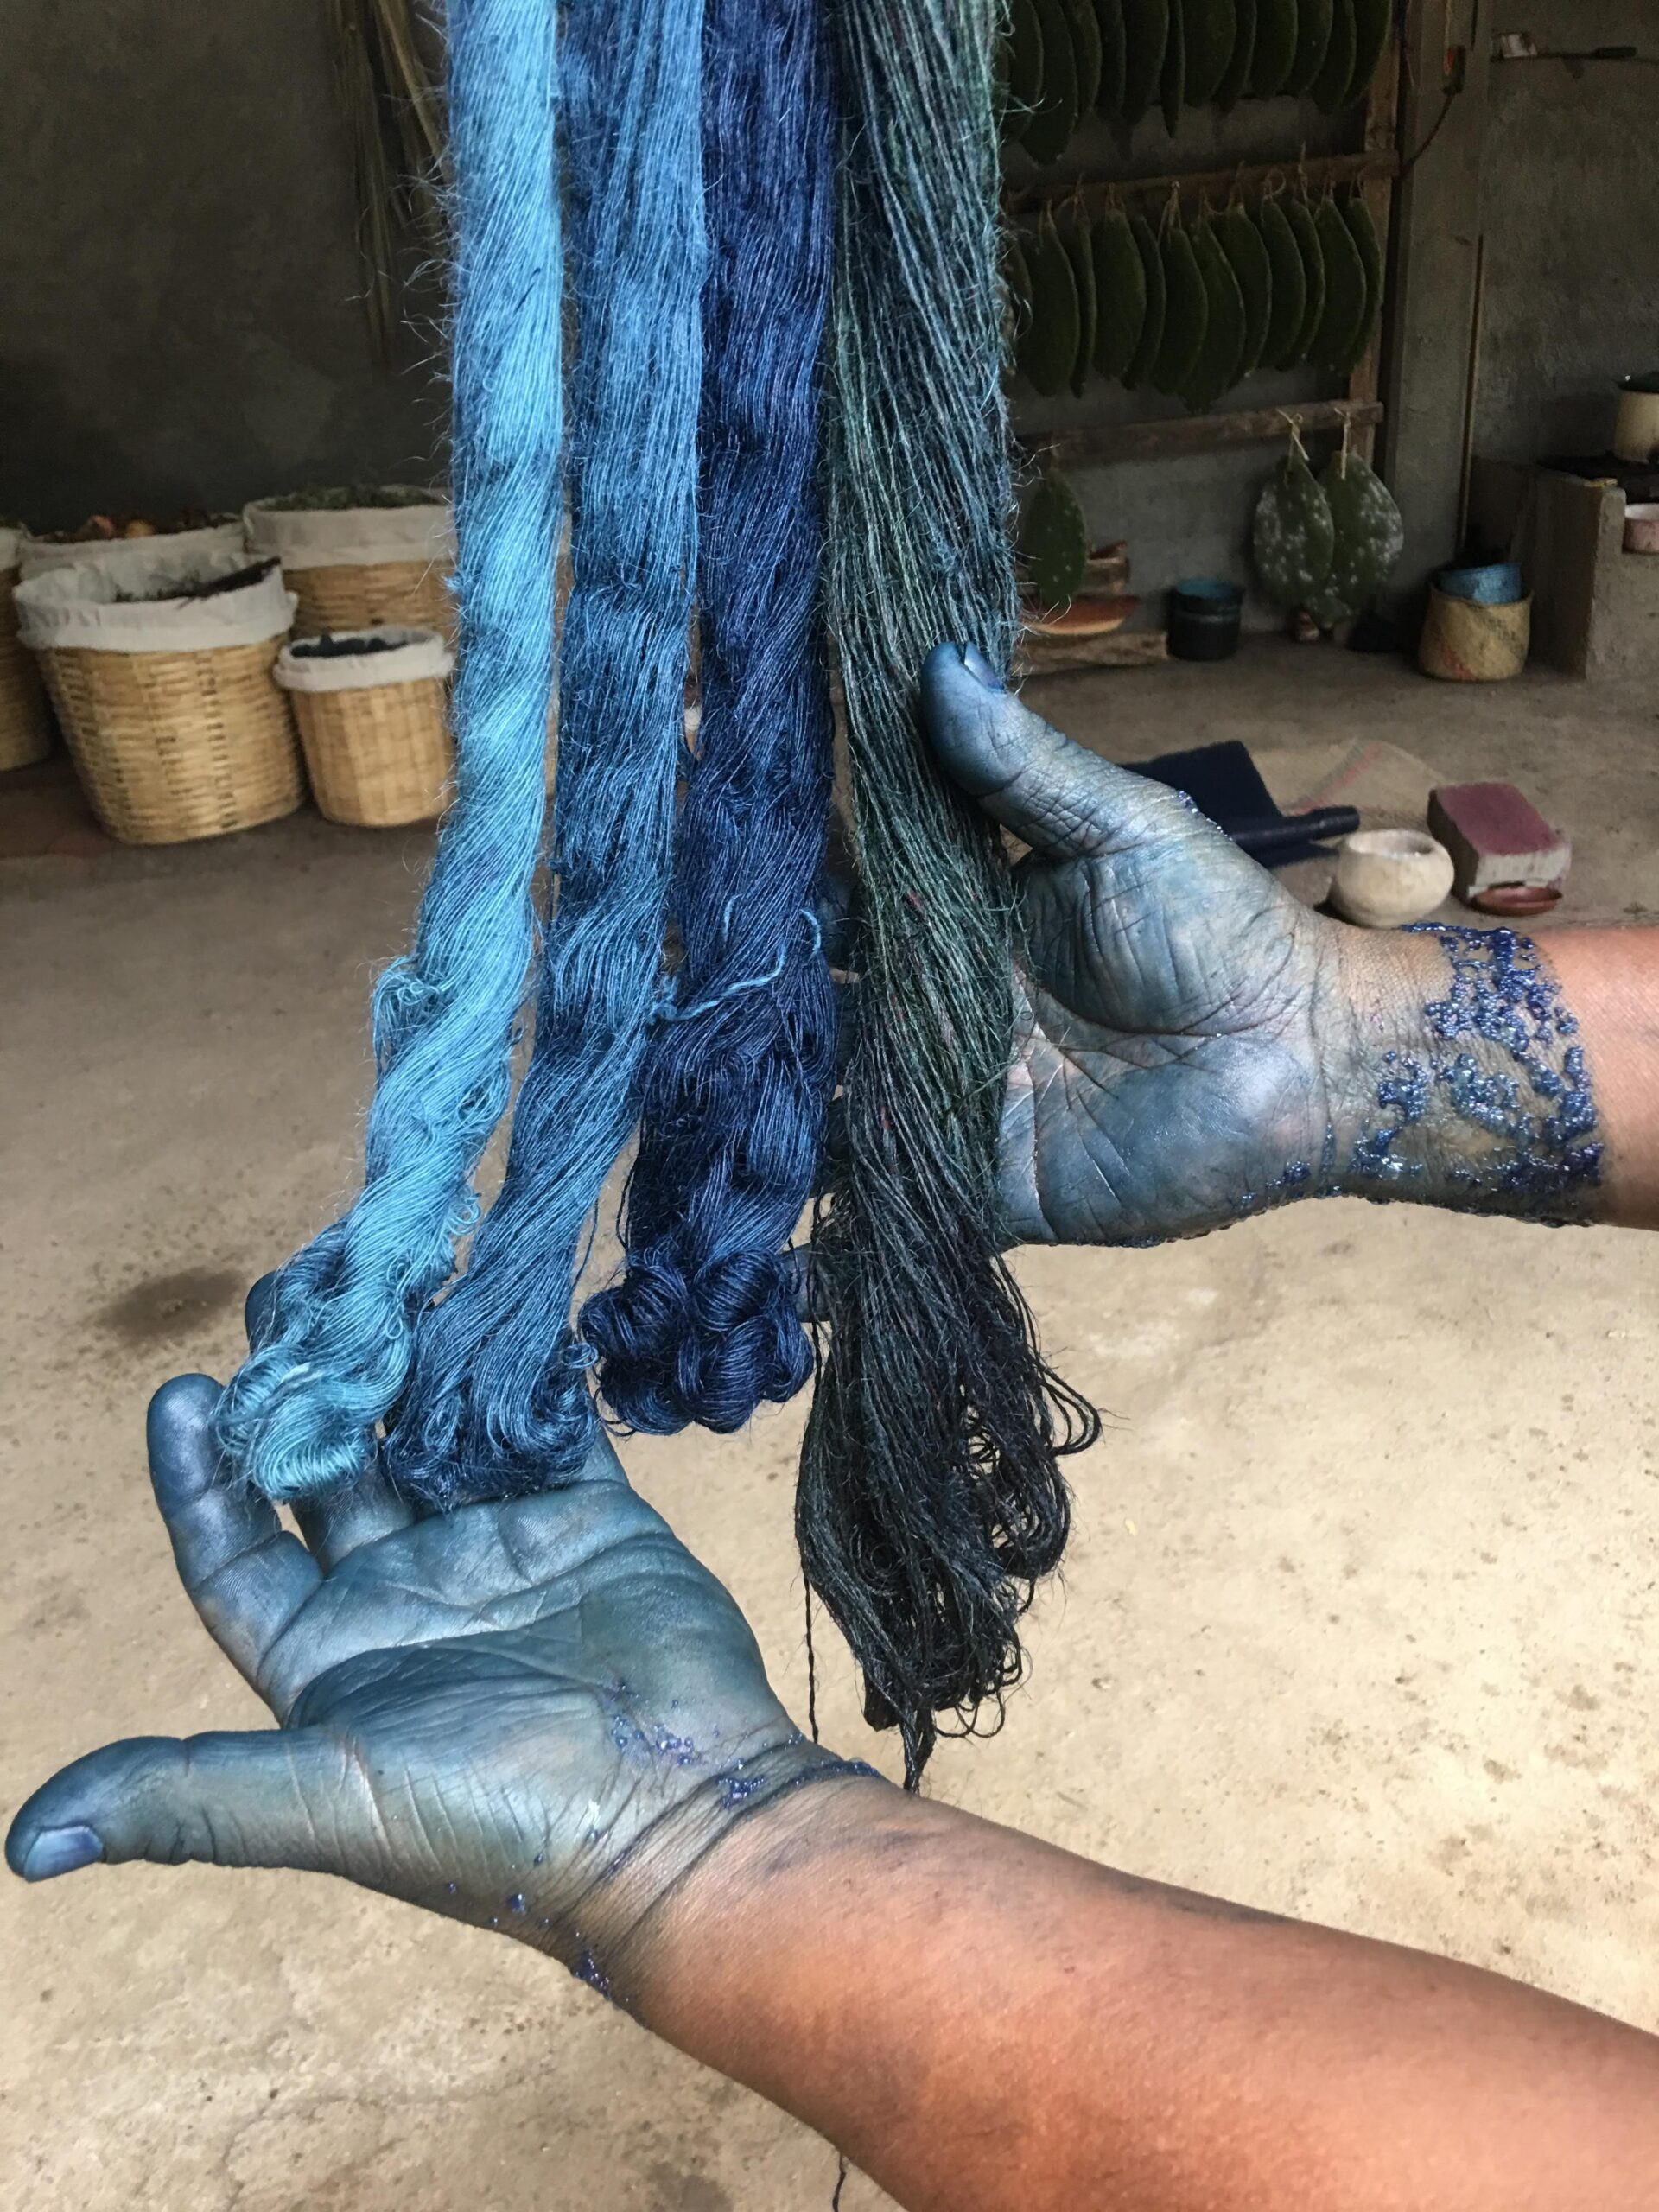 indigo-dyed yarns in the studio of Porfirio Gutiérrez y Familia